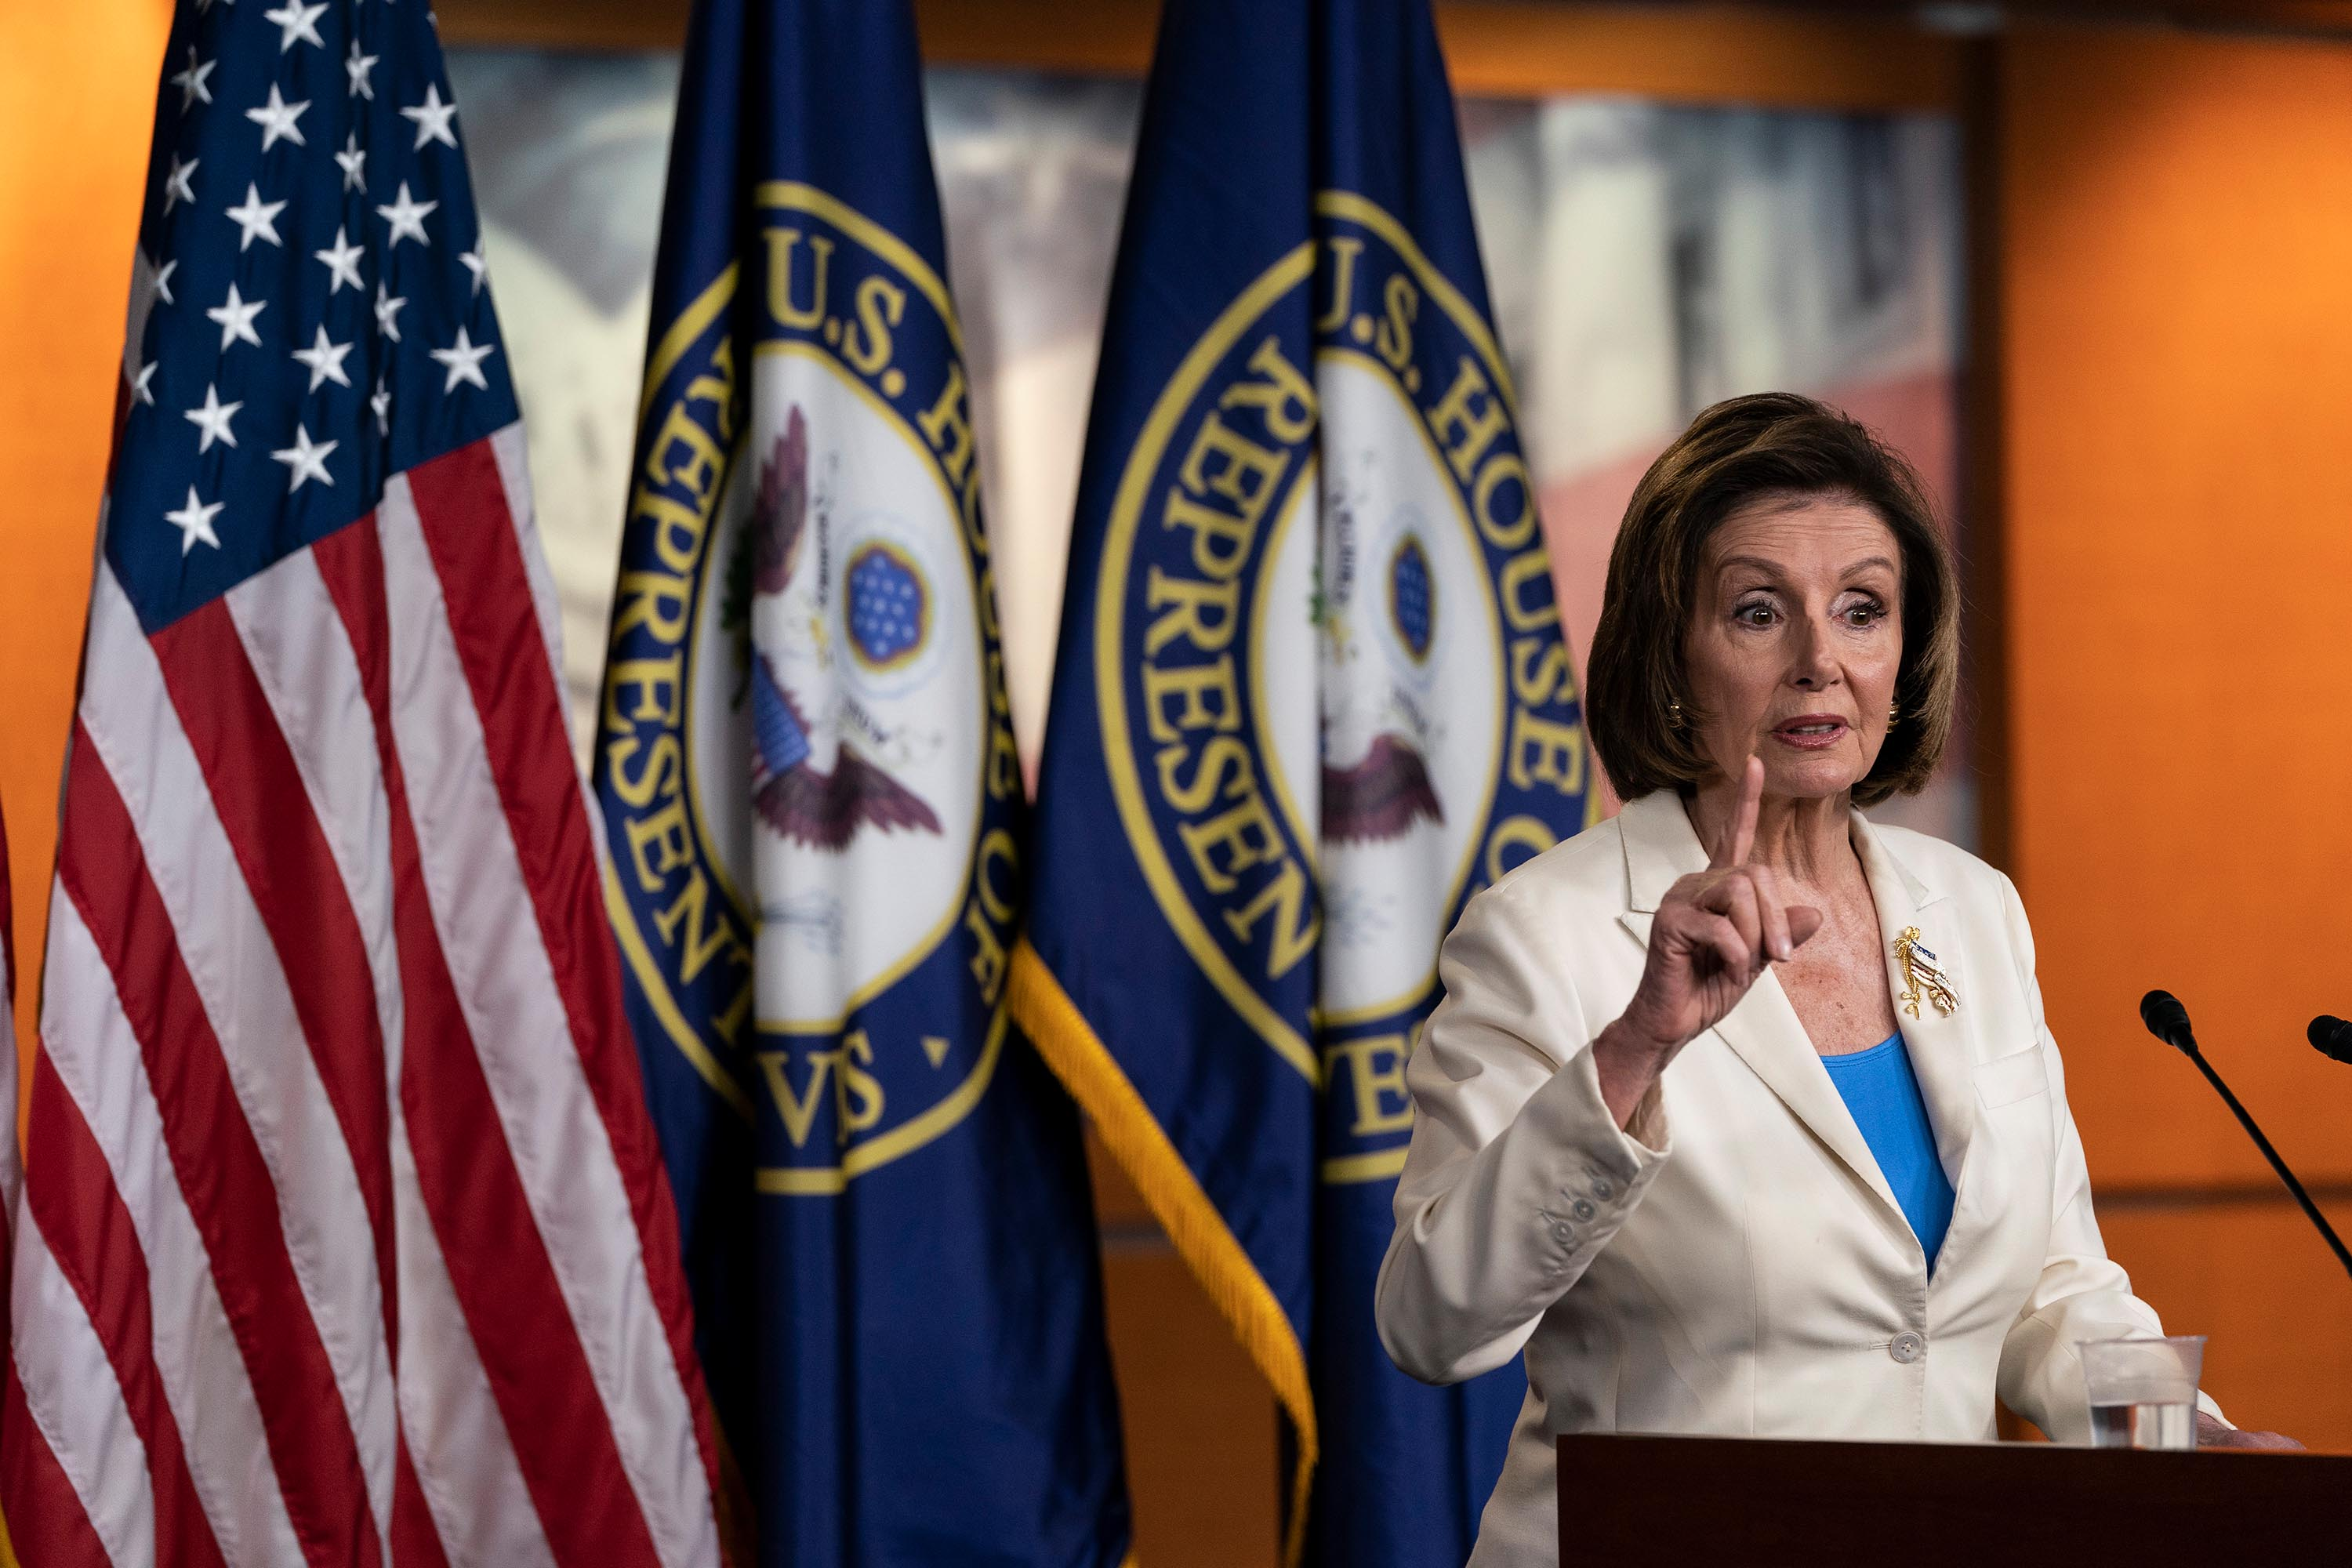 Pelosi stands by infrastructure strategy despite pushback